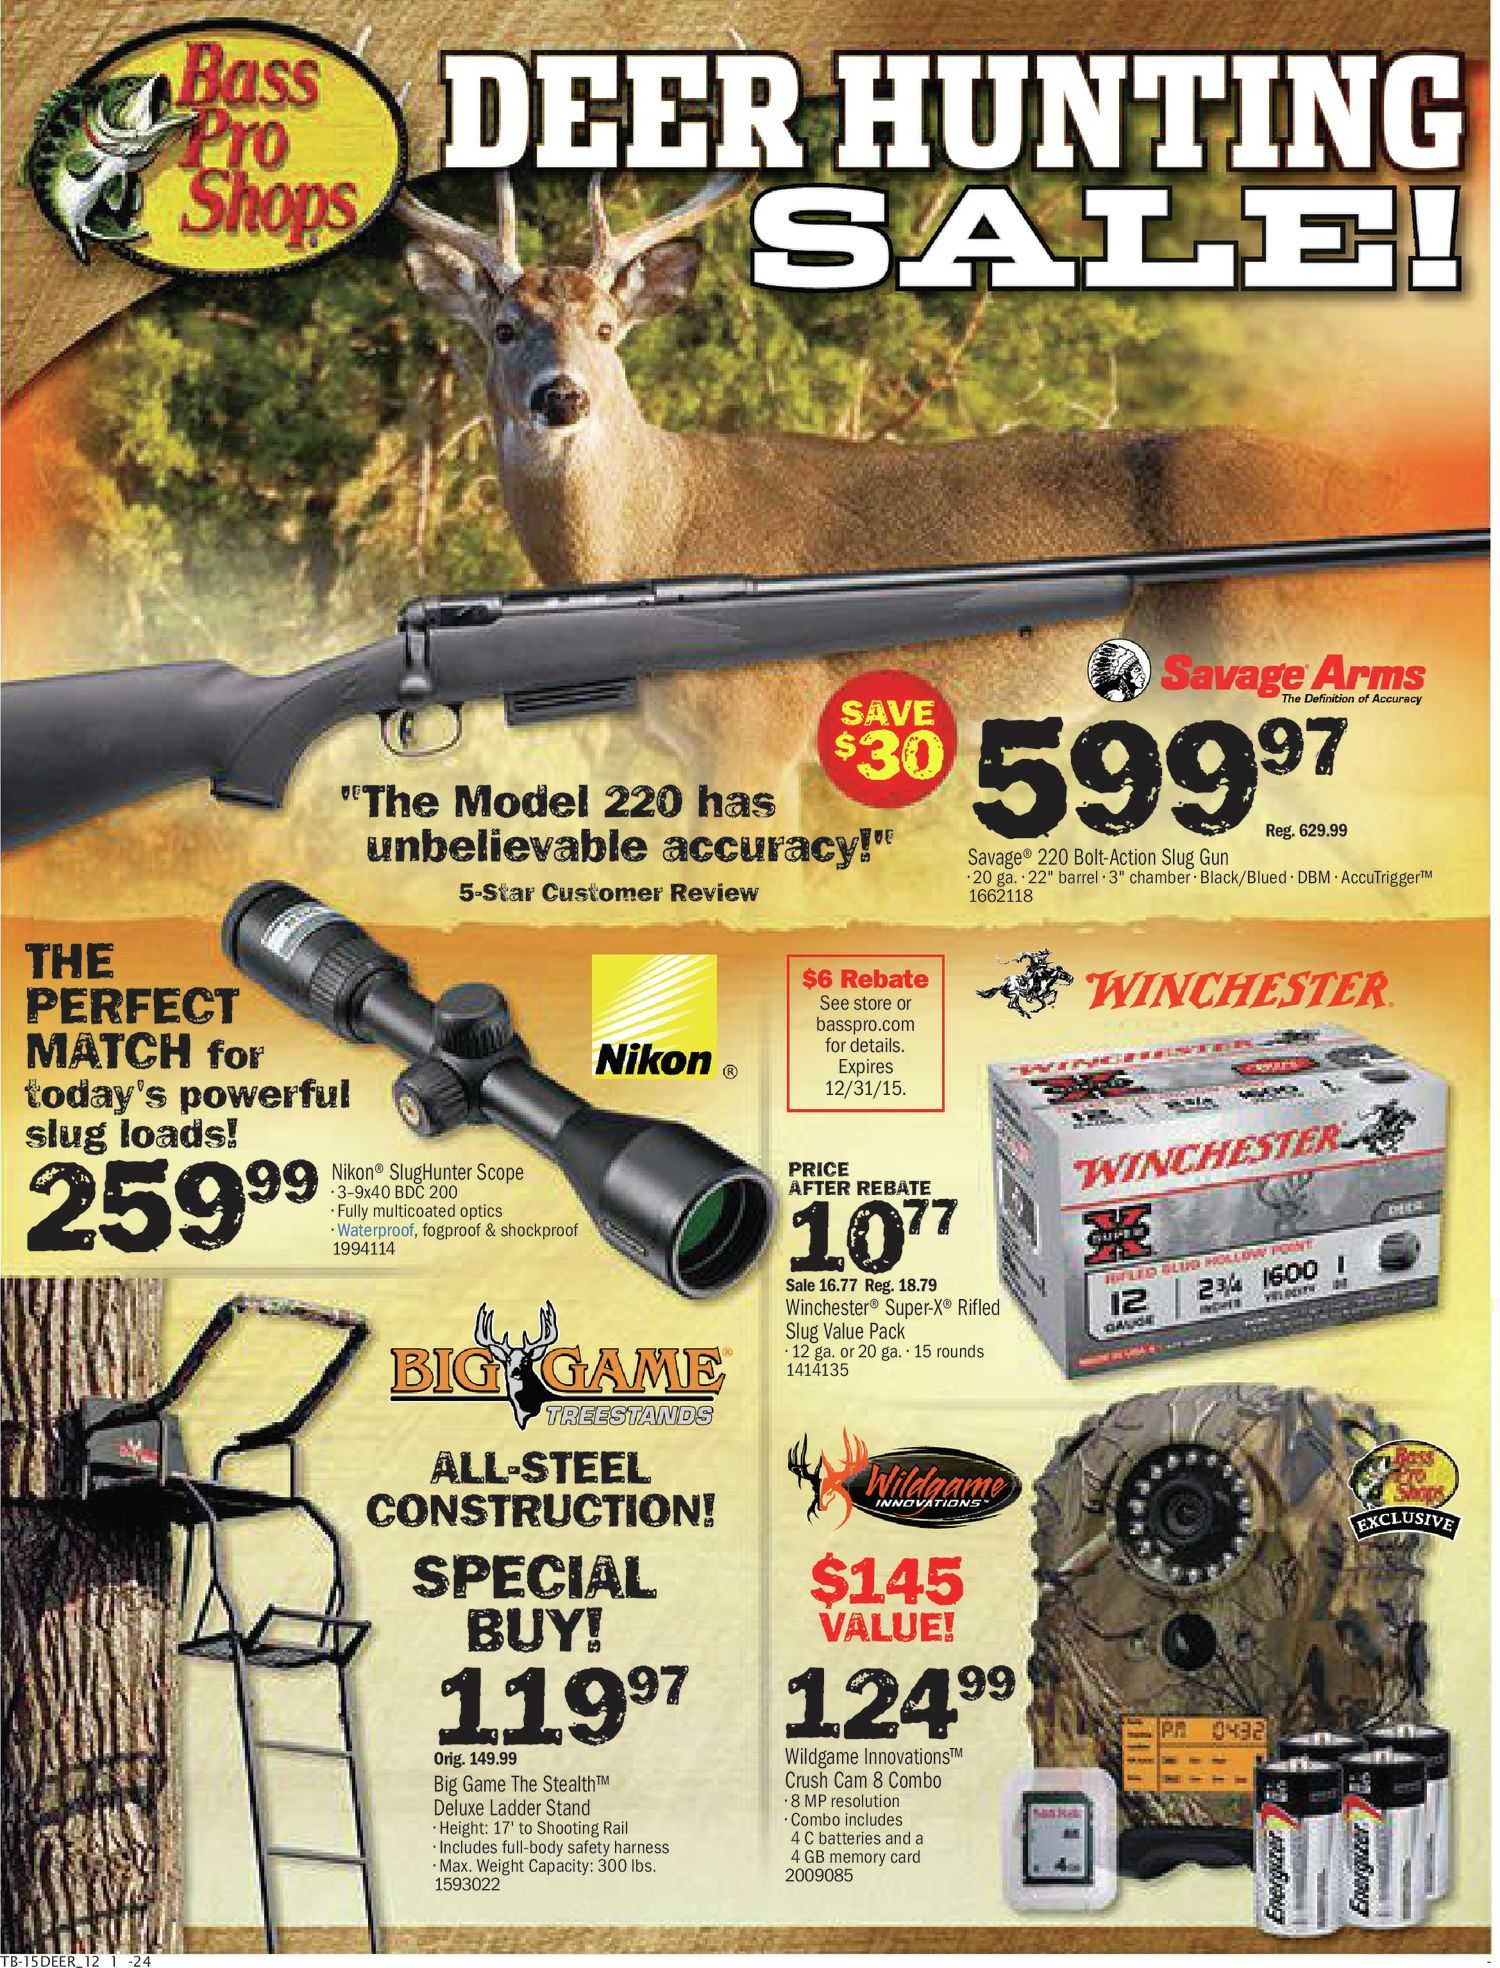 weekly redflagdeals box original pro blinds for oct com to flyers sale hunting sep shops bass flyer deer